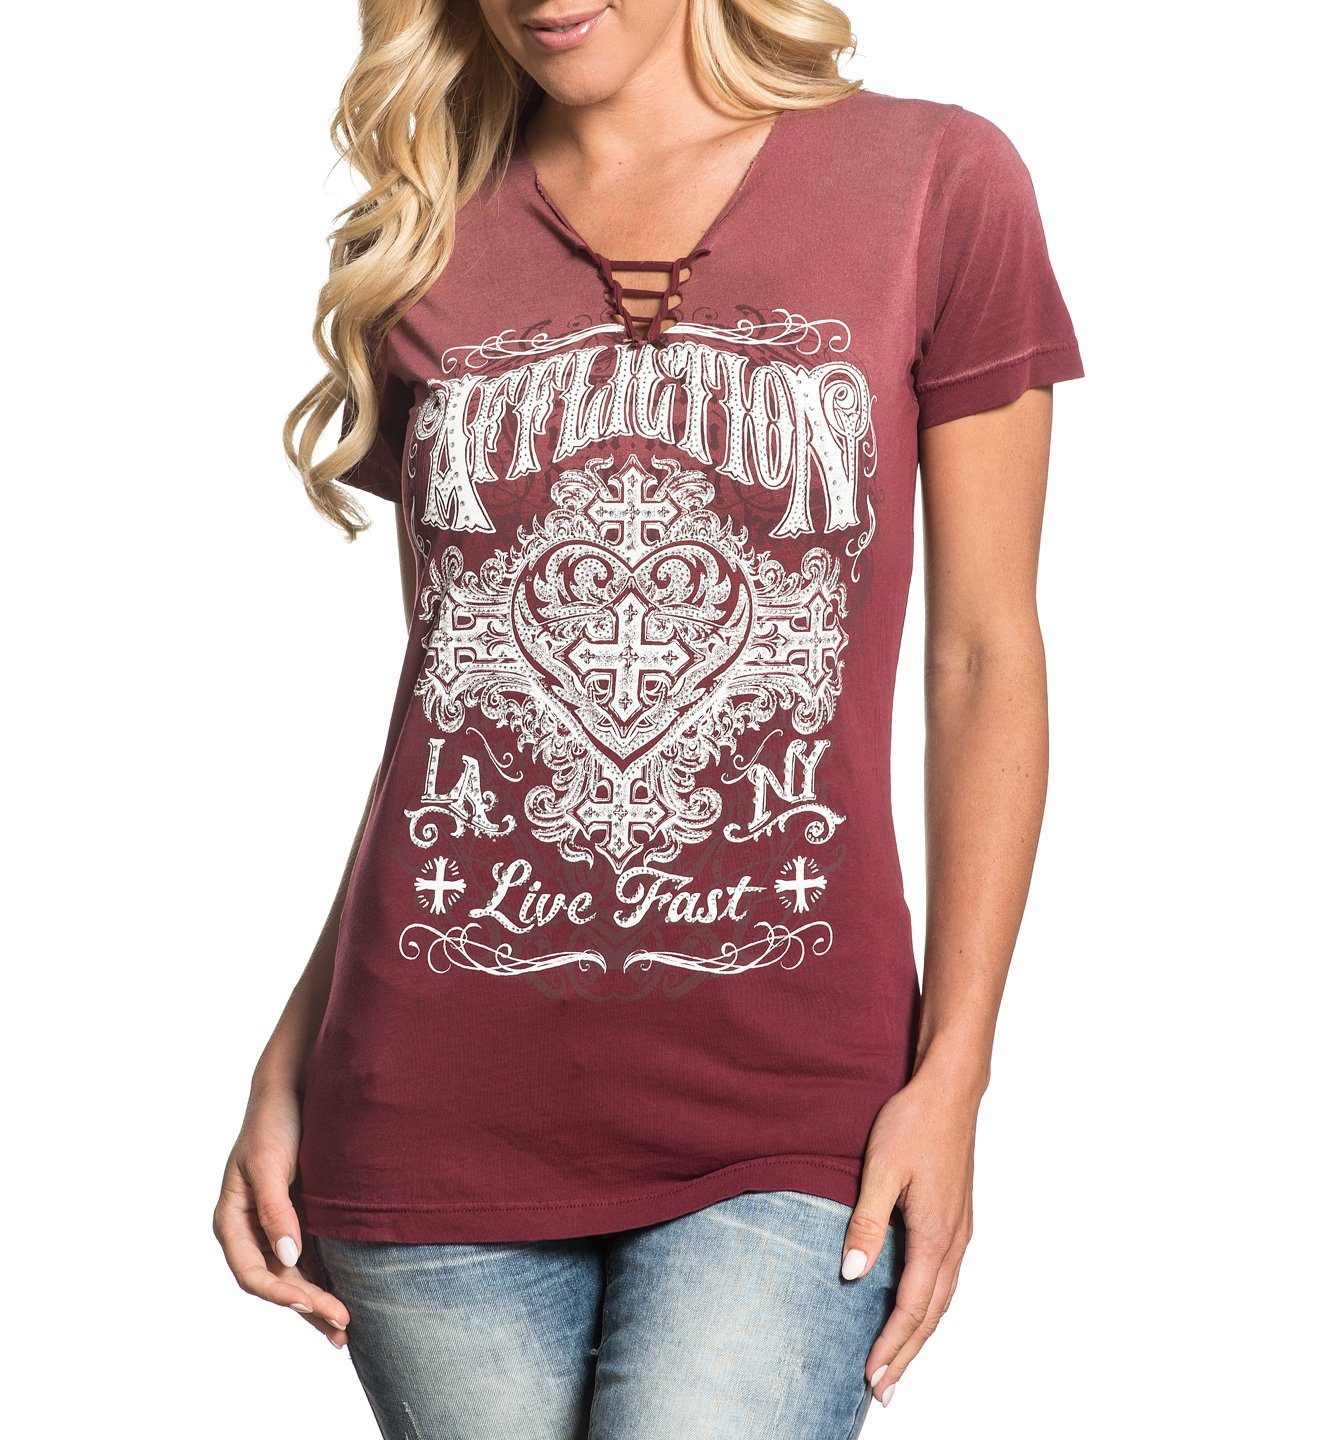 Ink - Womens Short Sleeve Tees - Affliction Clothing